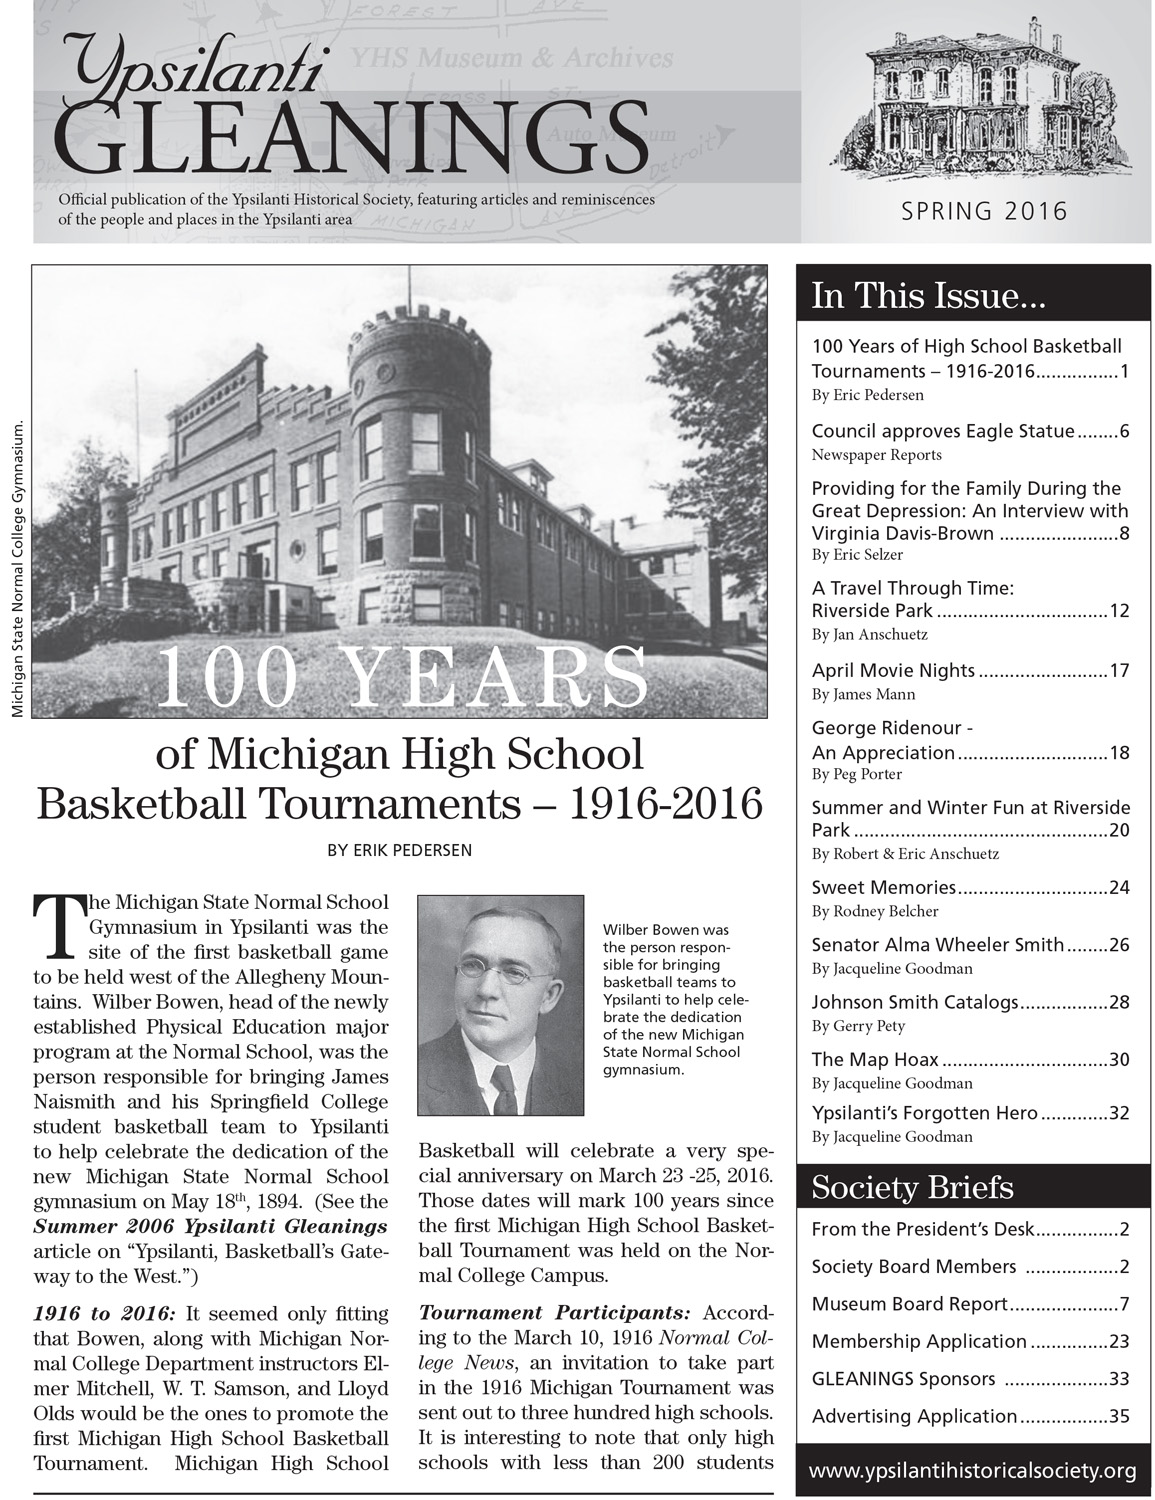 100 Years of High School Basketball Tournaments - 1916-2006 image